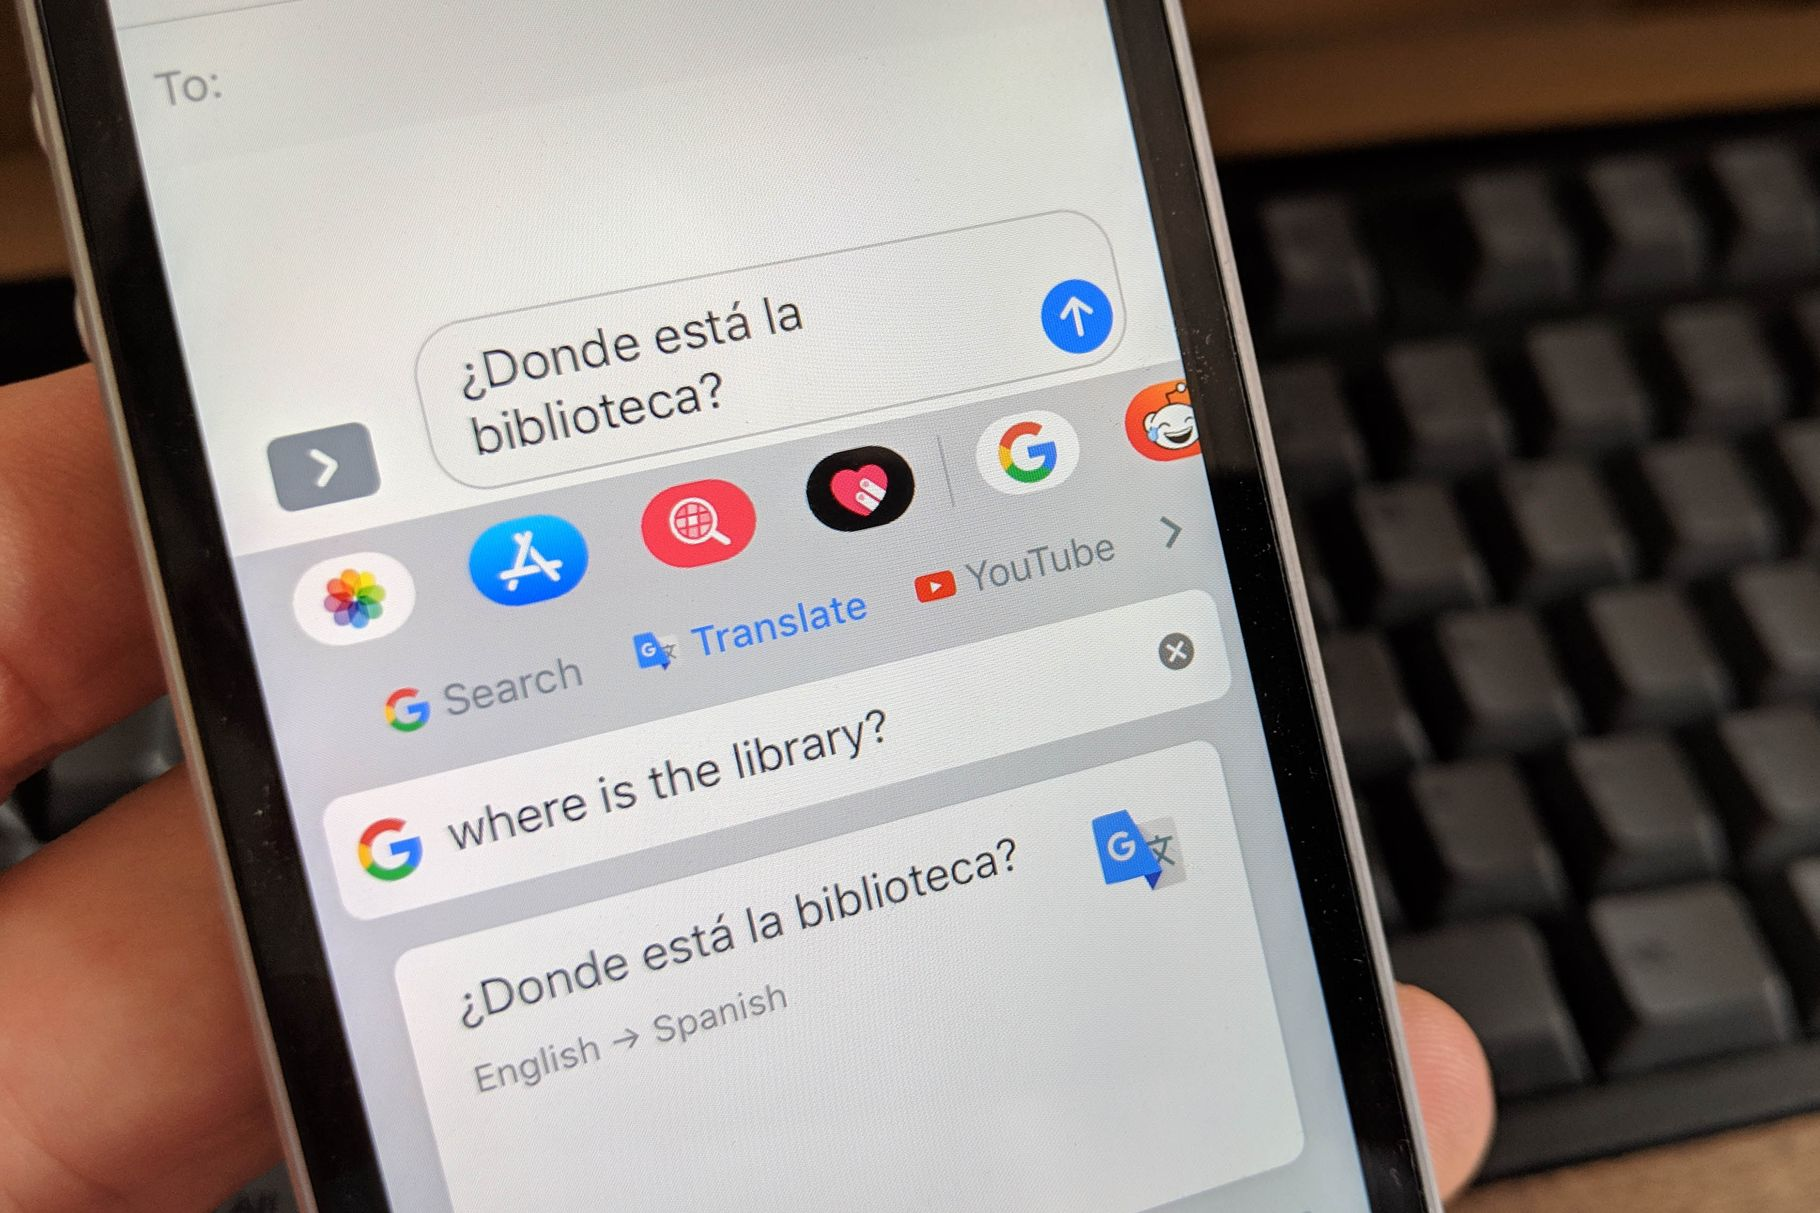 Google Translate integrato su Gboard iOS